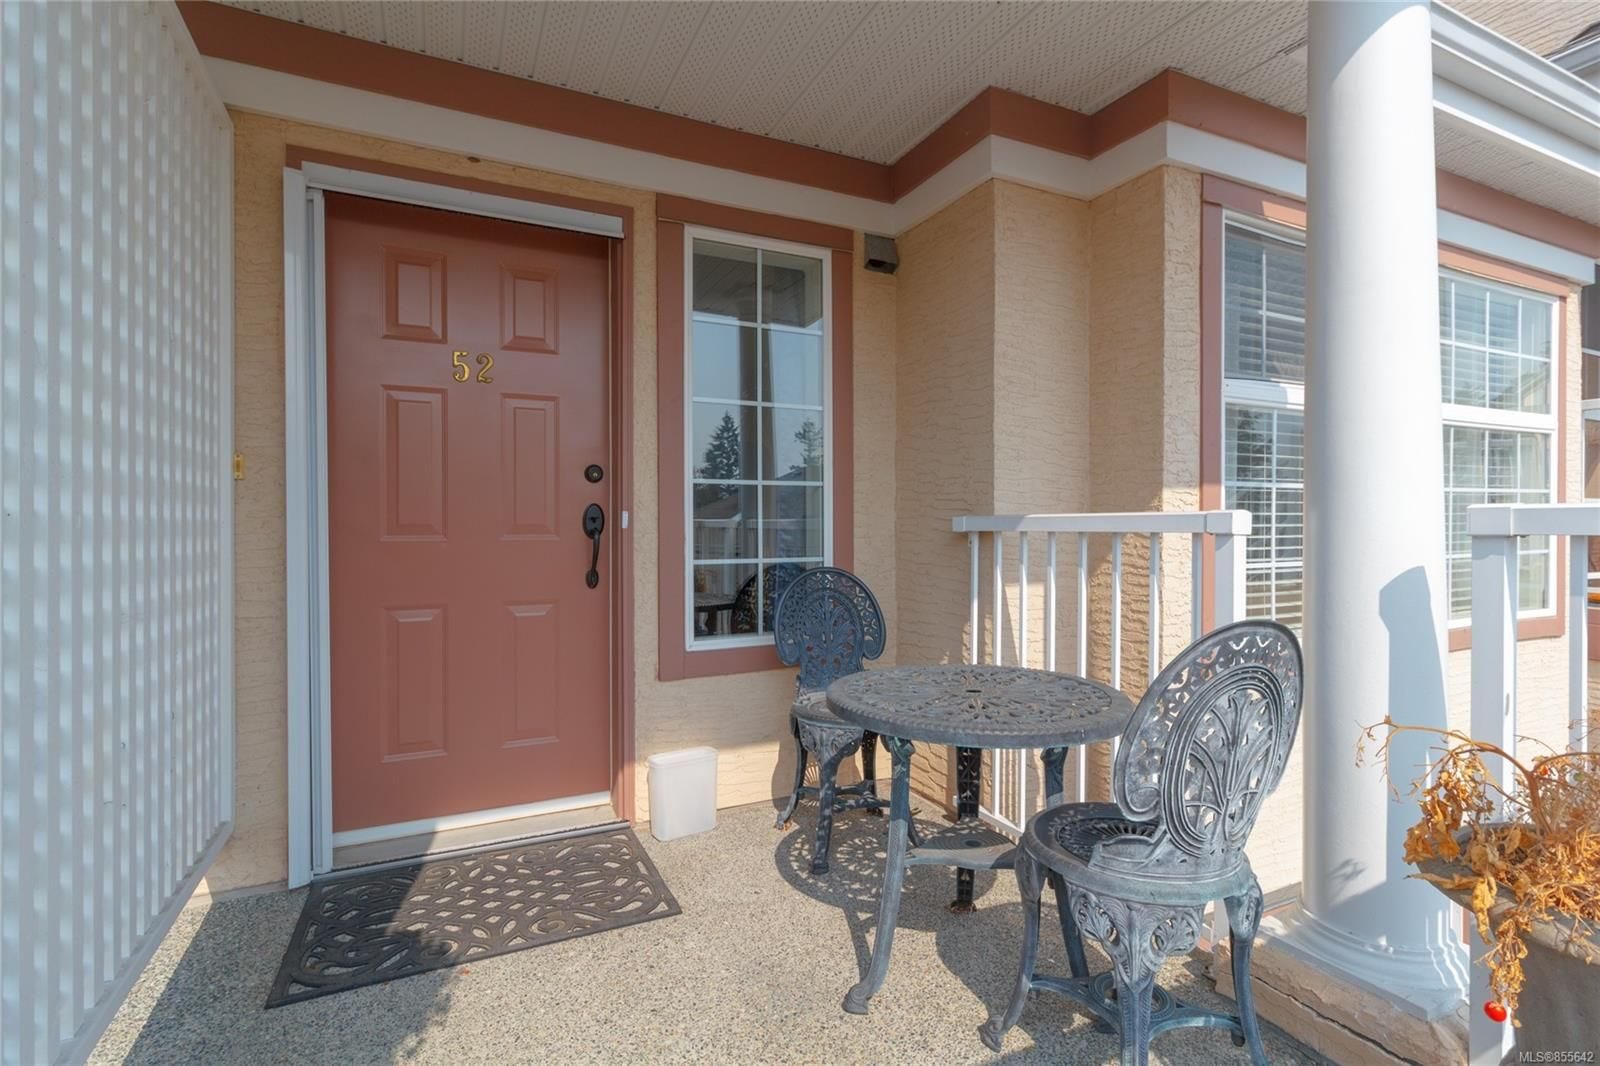 Photo 3: Photos: 52 14 Erskine Lane in : VR Hospital Row/Townhouse for sale (View Royal)  : MLS®# 855642